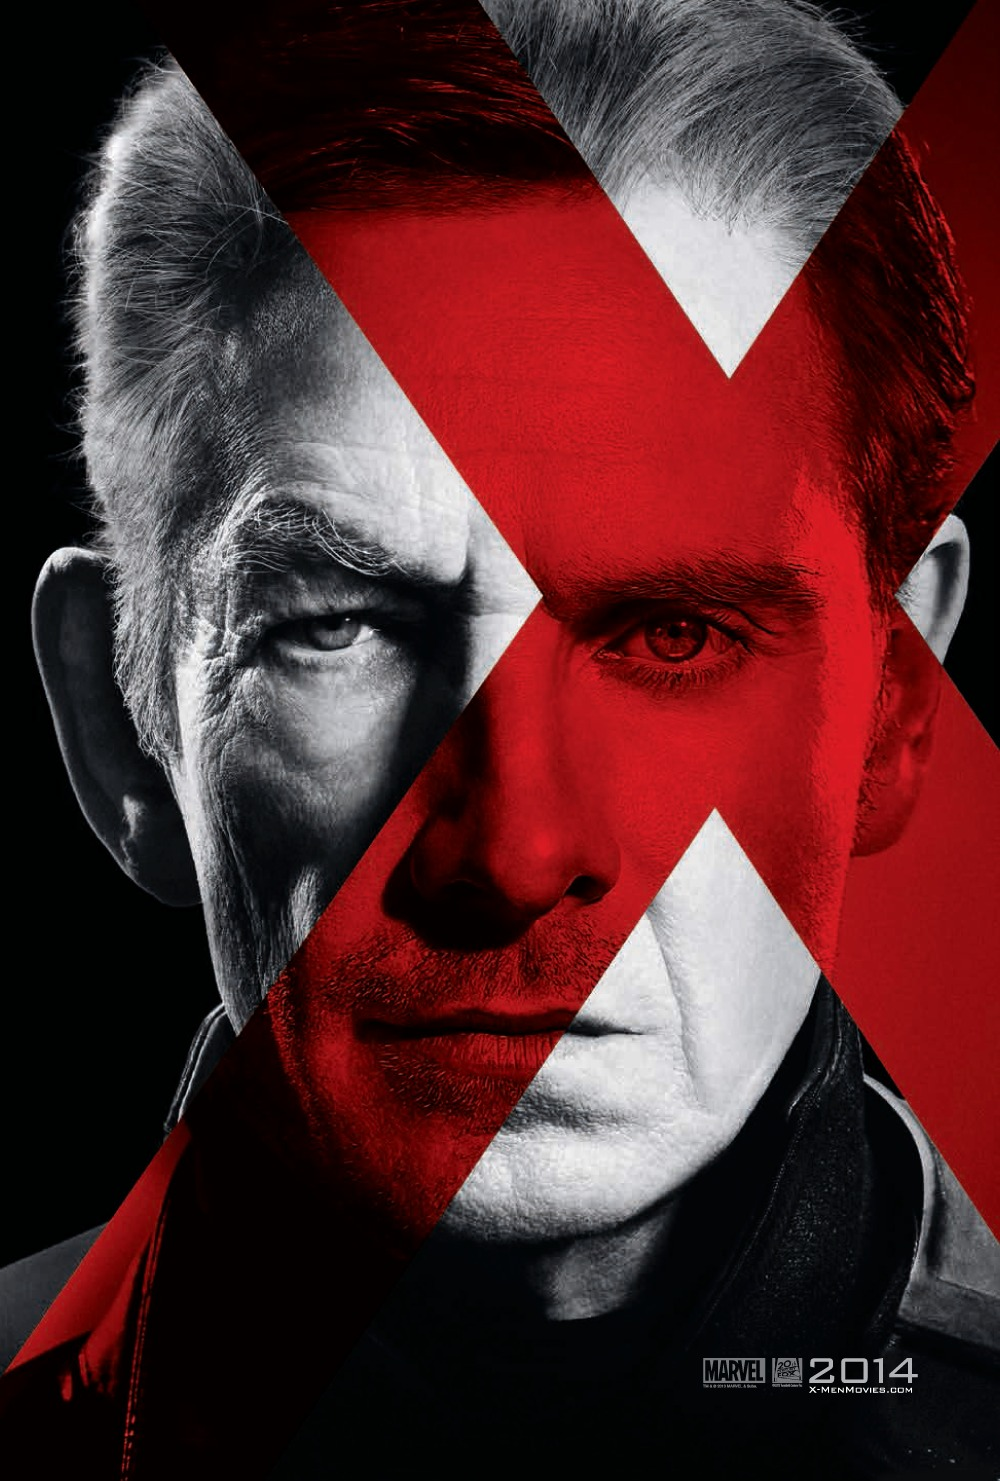 X-Men:-Days-of-Future-Past-Magneto